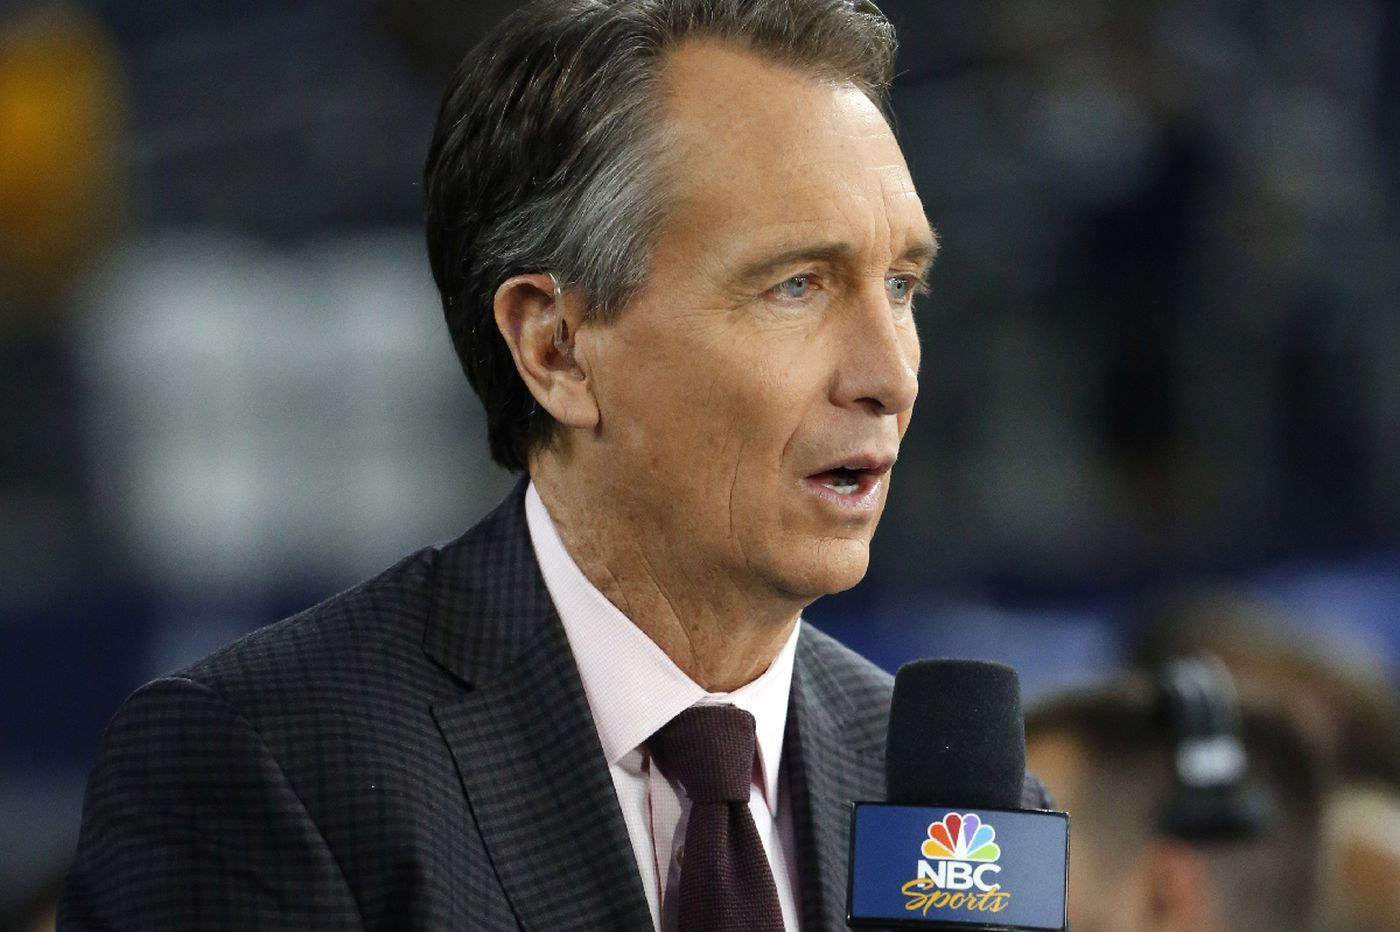 'I love the Eagles': Cris Collinsworth opens up about controversial Eagles Super Bowl calls